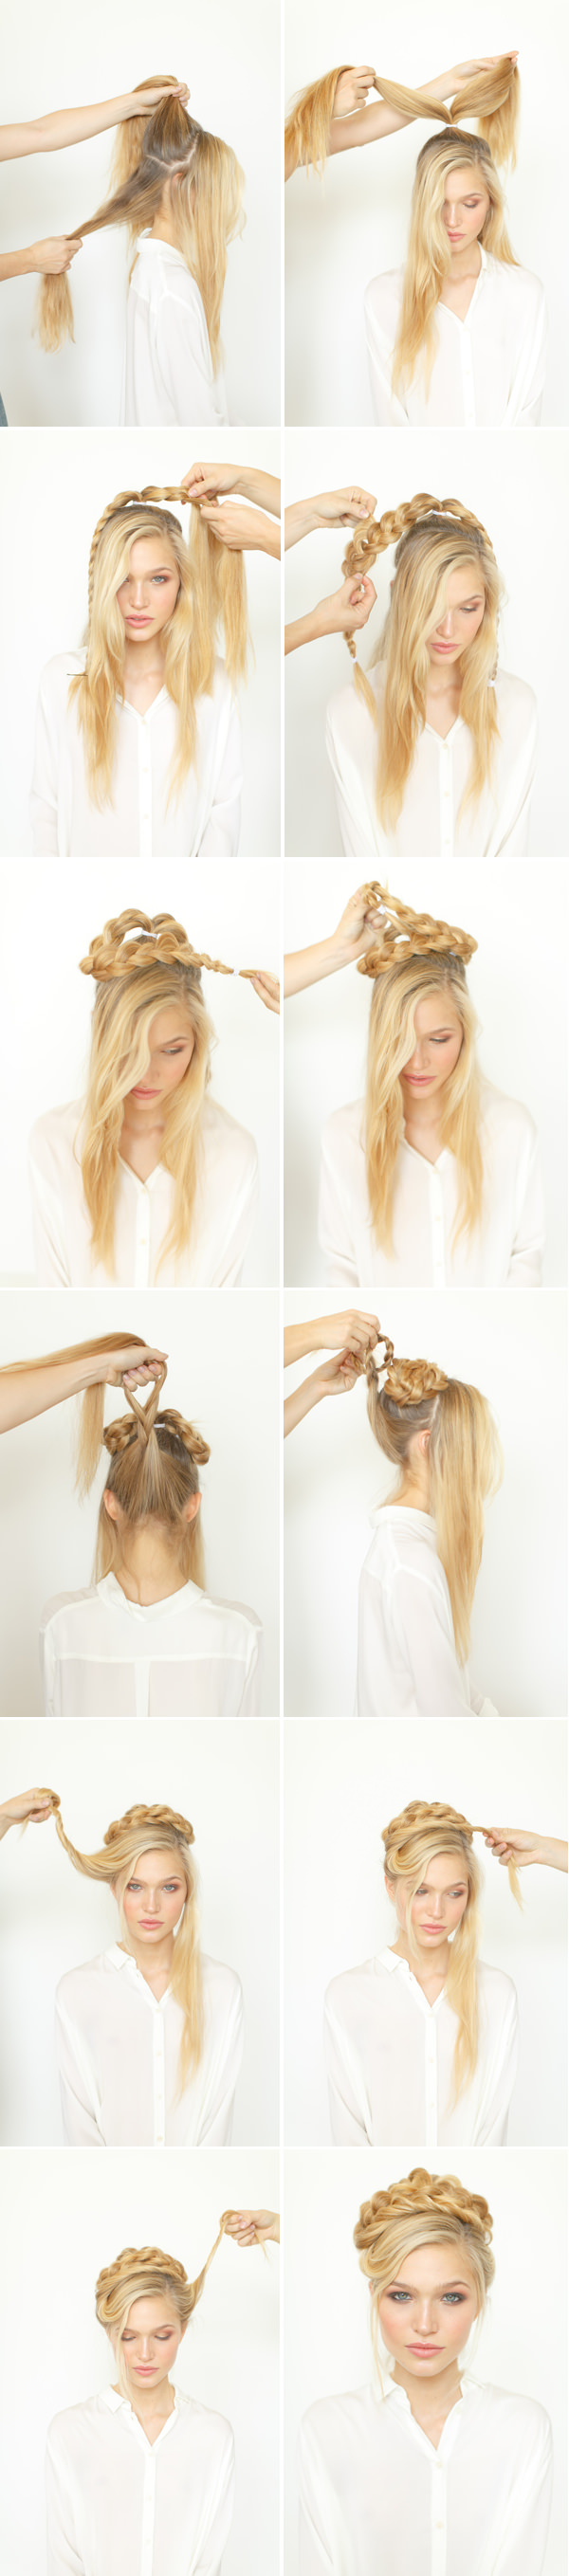 DIY Rope Braid WeddingUpdo